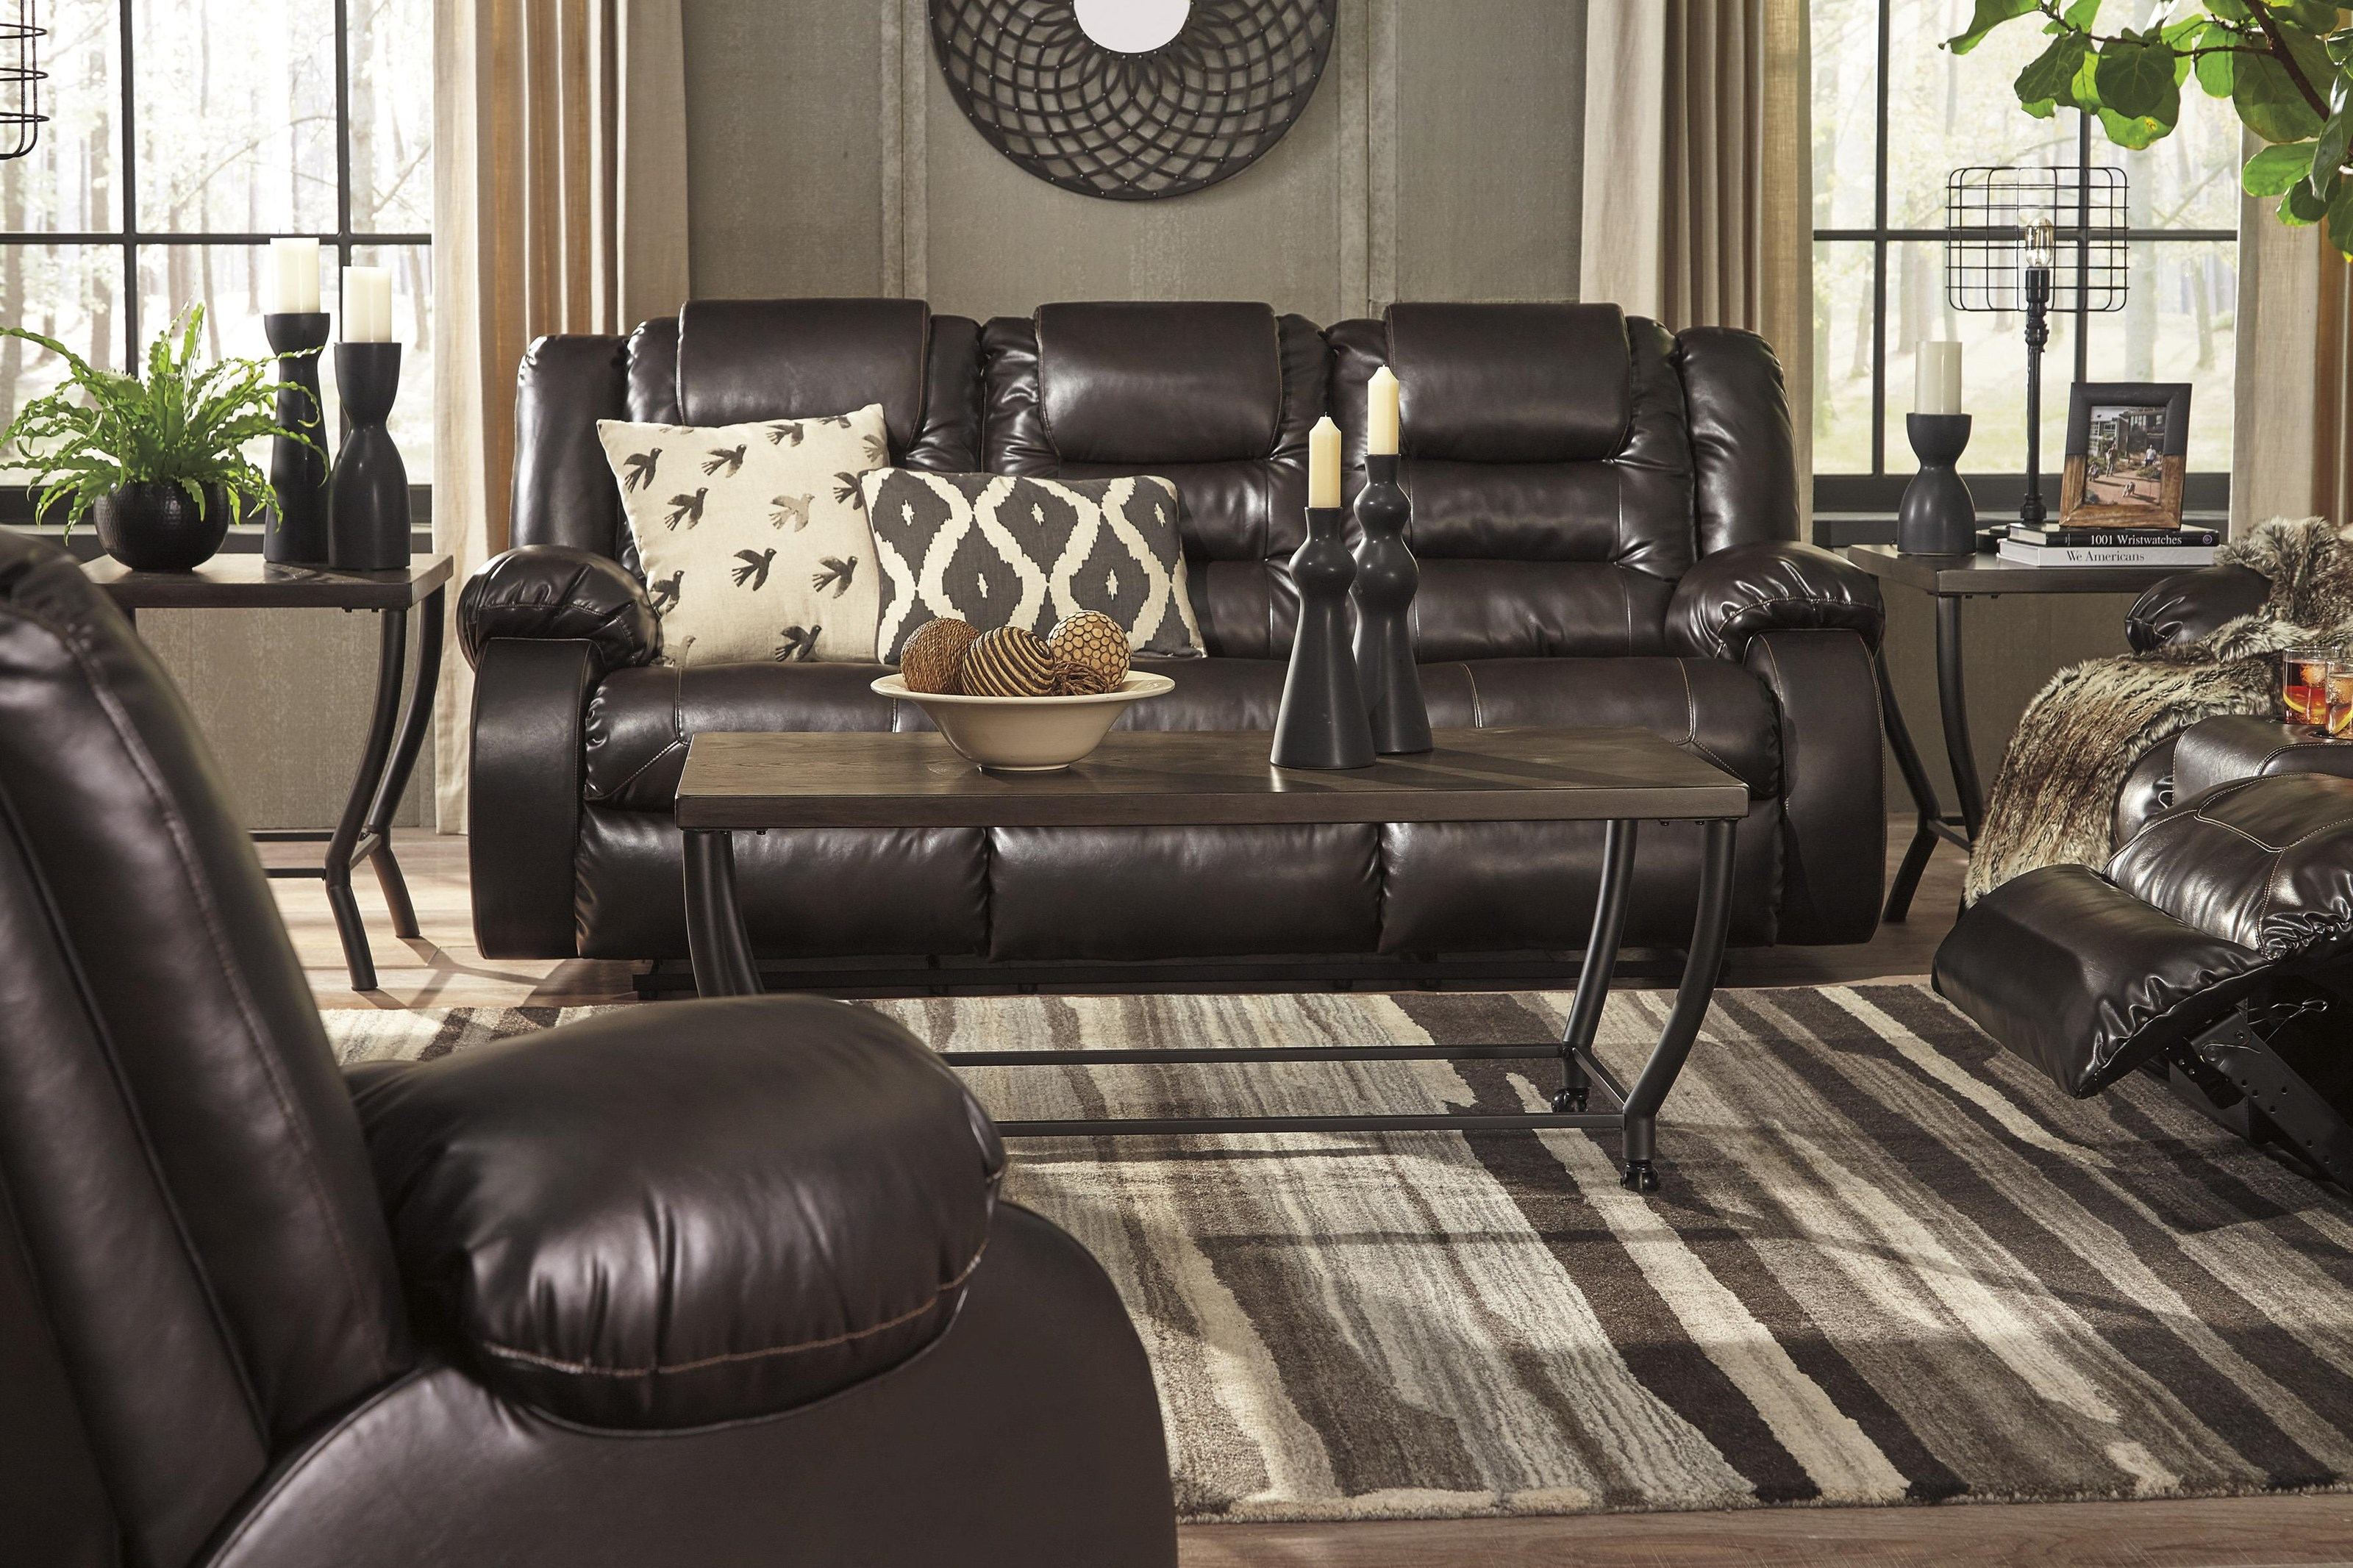 Vacherie Recliner Sofa and Recliner Set by Signature Design by Ashley at Sam Levitz Outlet